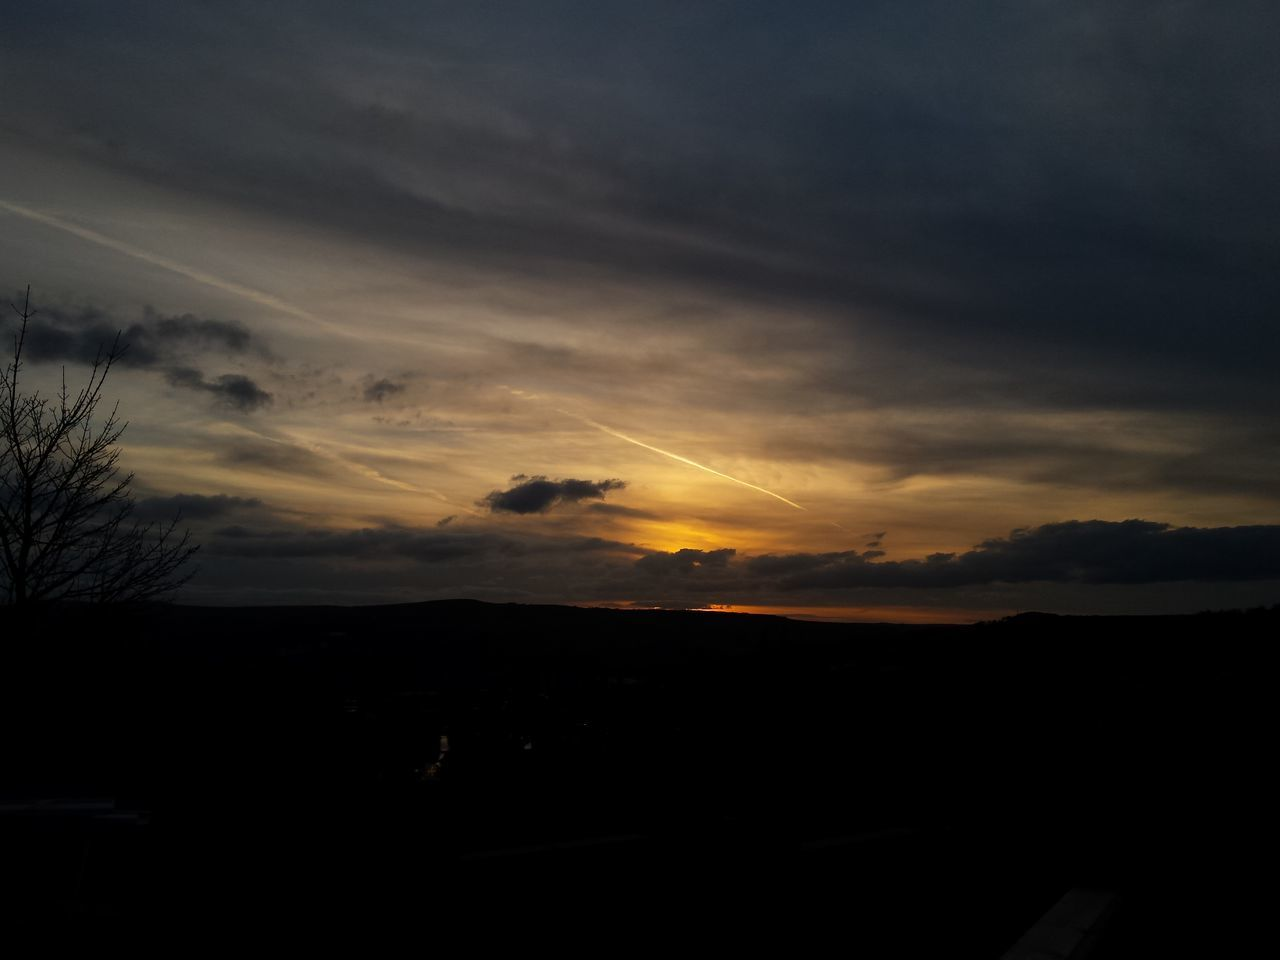 SILHOUETTE OF LANDSCAPE AGAINST SKY